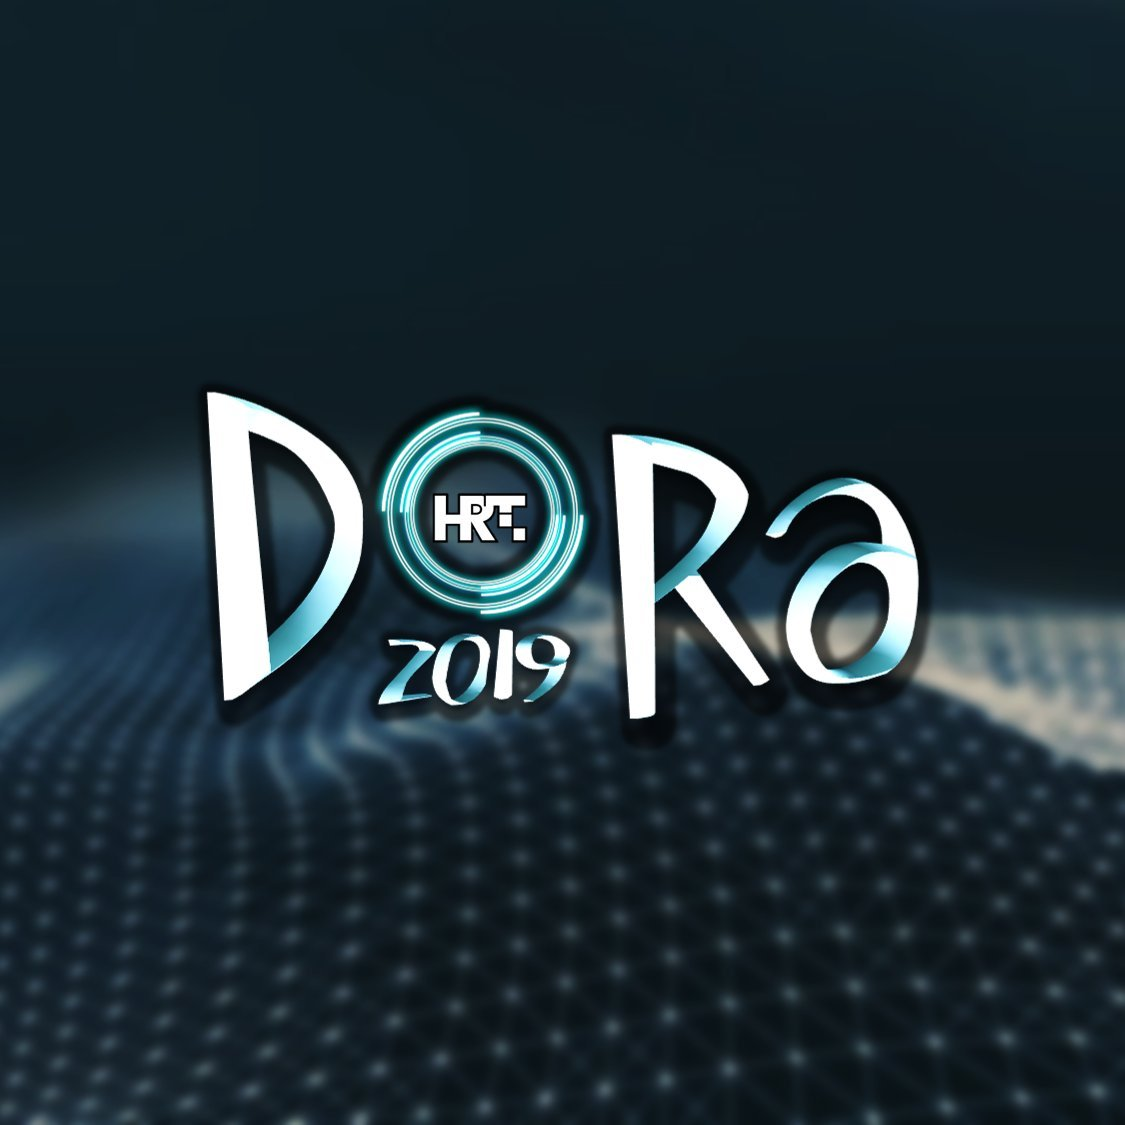 Calendar For Year 2019 Croatia With Dora Expected To Take Place On February 16 Eurovoix